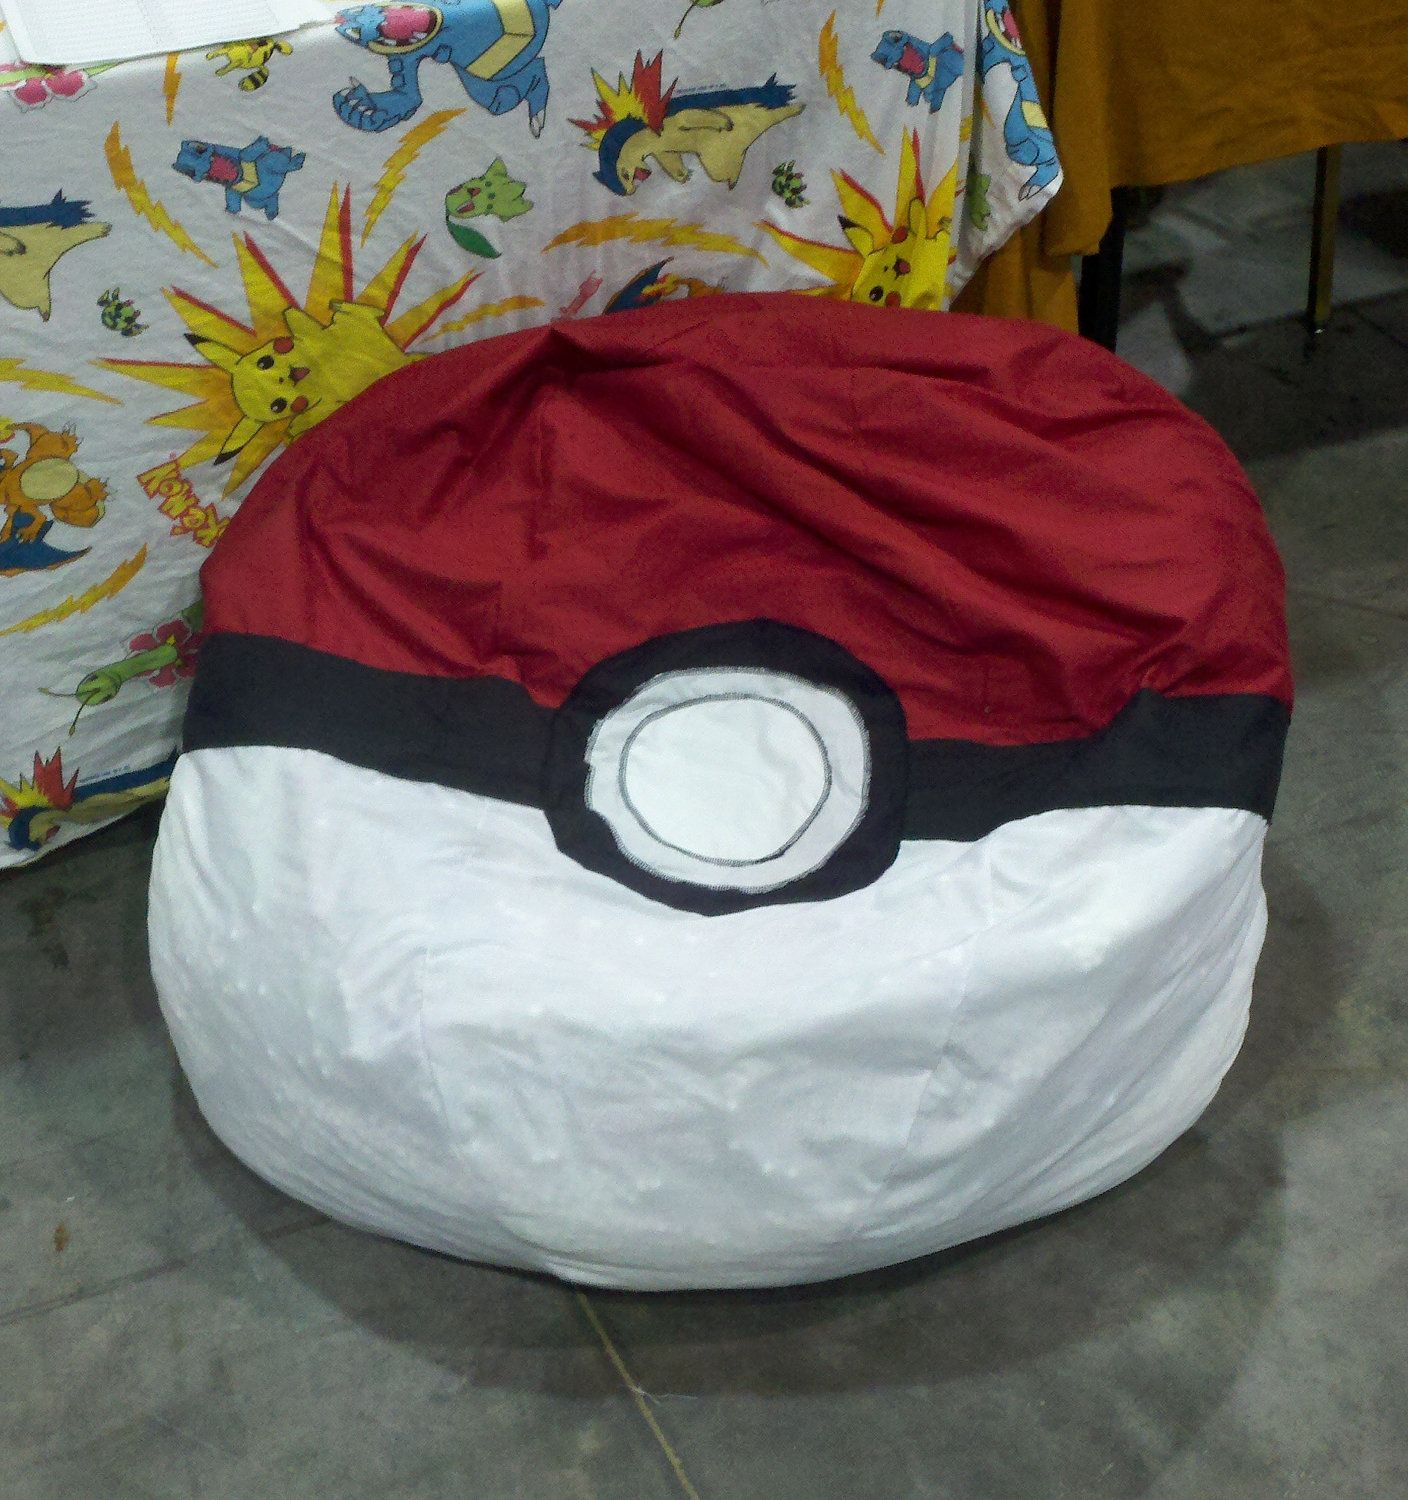 Bean Bag Chair Cover Pokeball Bean Bag Chair Cover 100 00 Via Etsy I Nerd